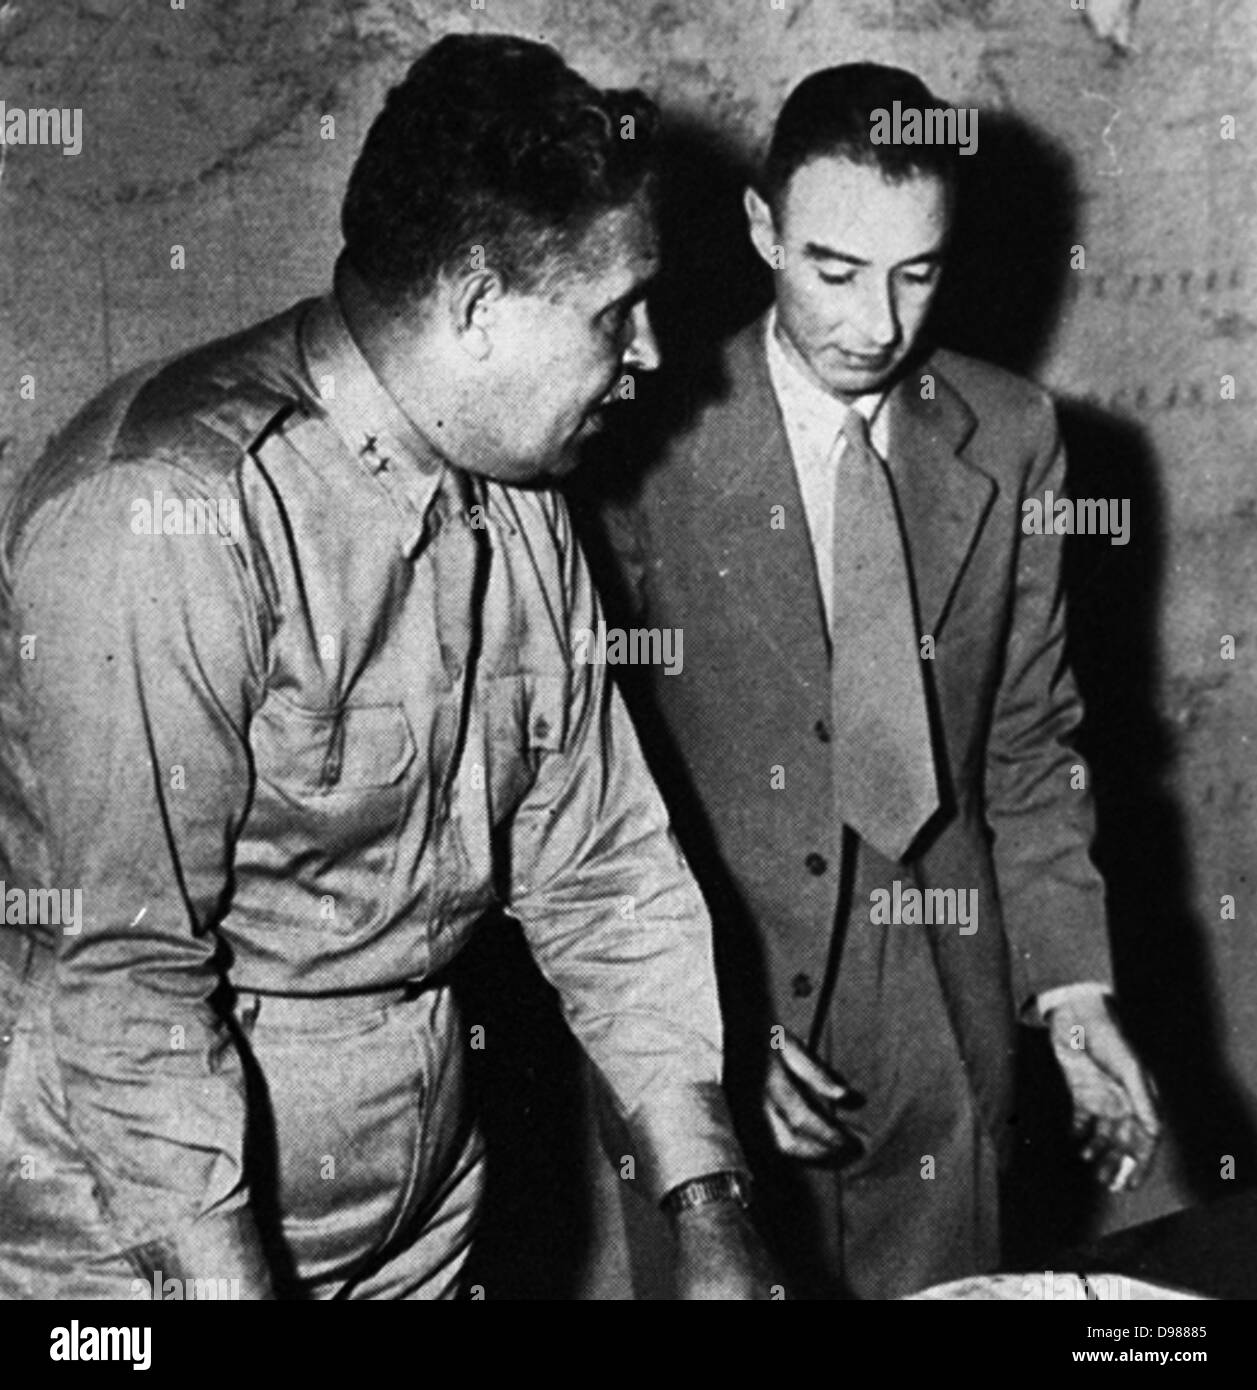 General Leslie Groves (left), military head of the Manhattan Project, with Prof. Robert Oppenheimer (right) - Stock Image